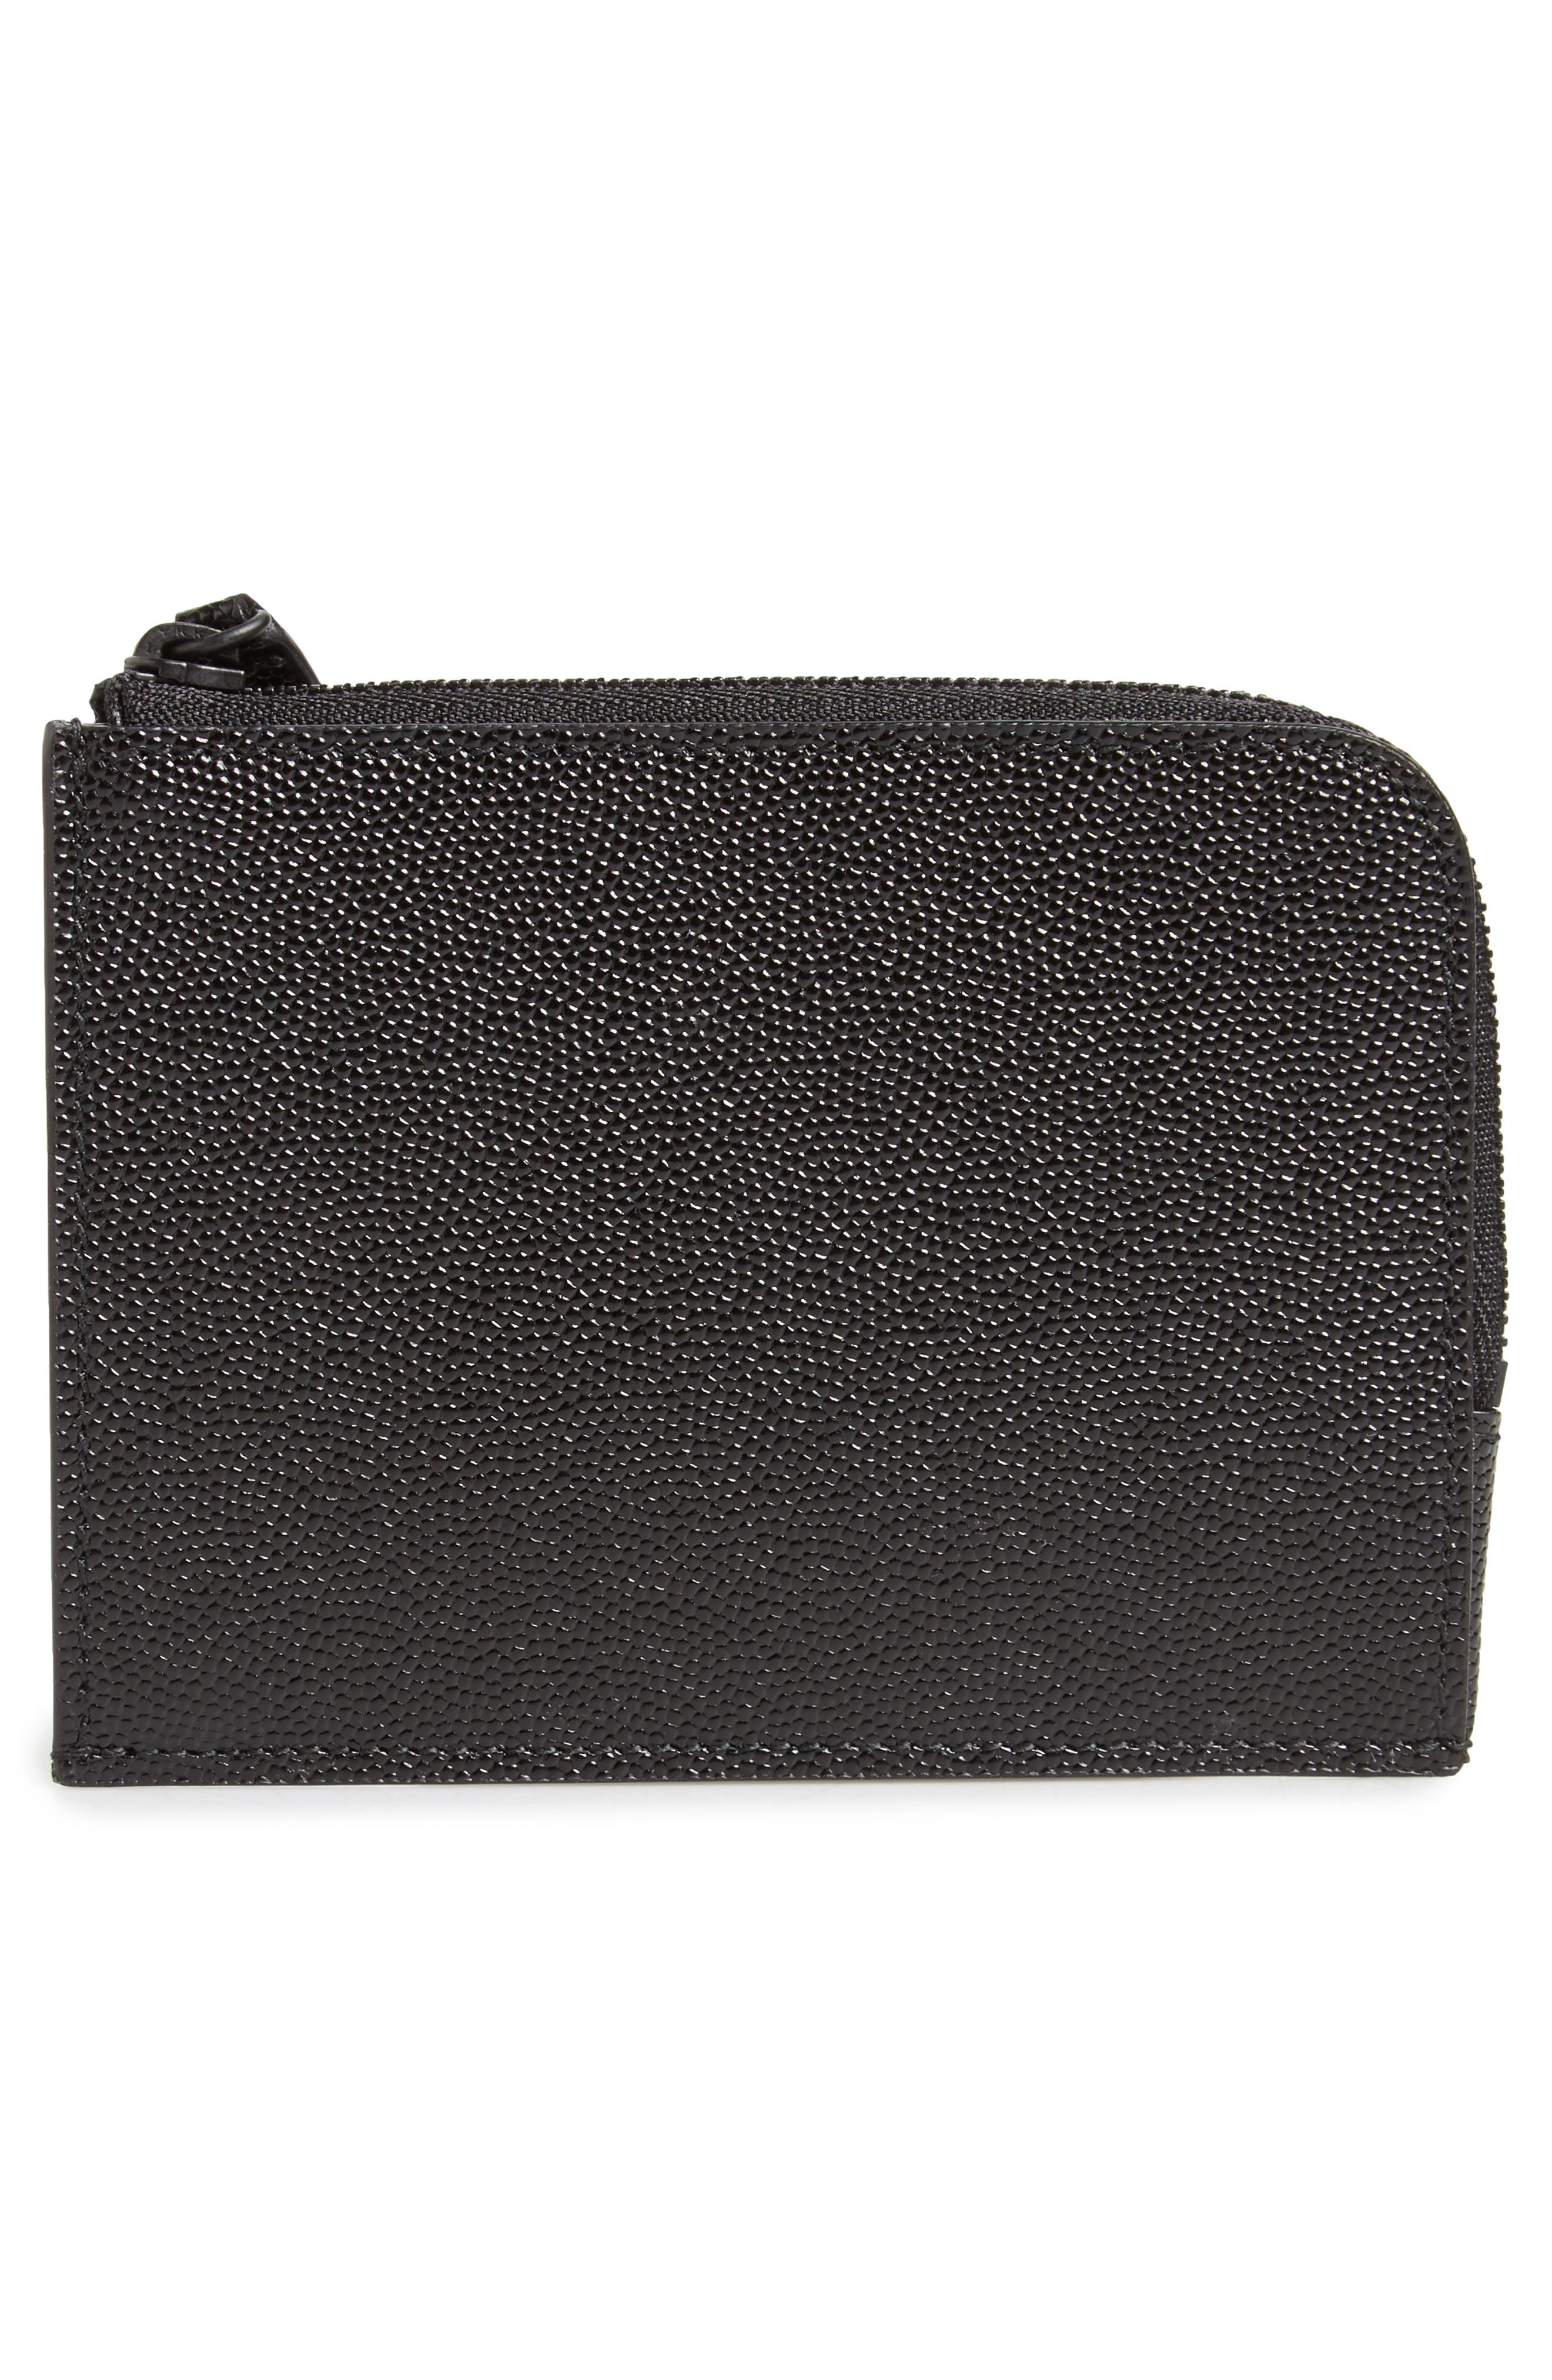 Pebble Leather Zip Wallet,                             Alternate thumbnail 3, color,                             Black